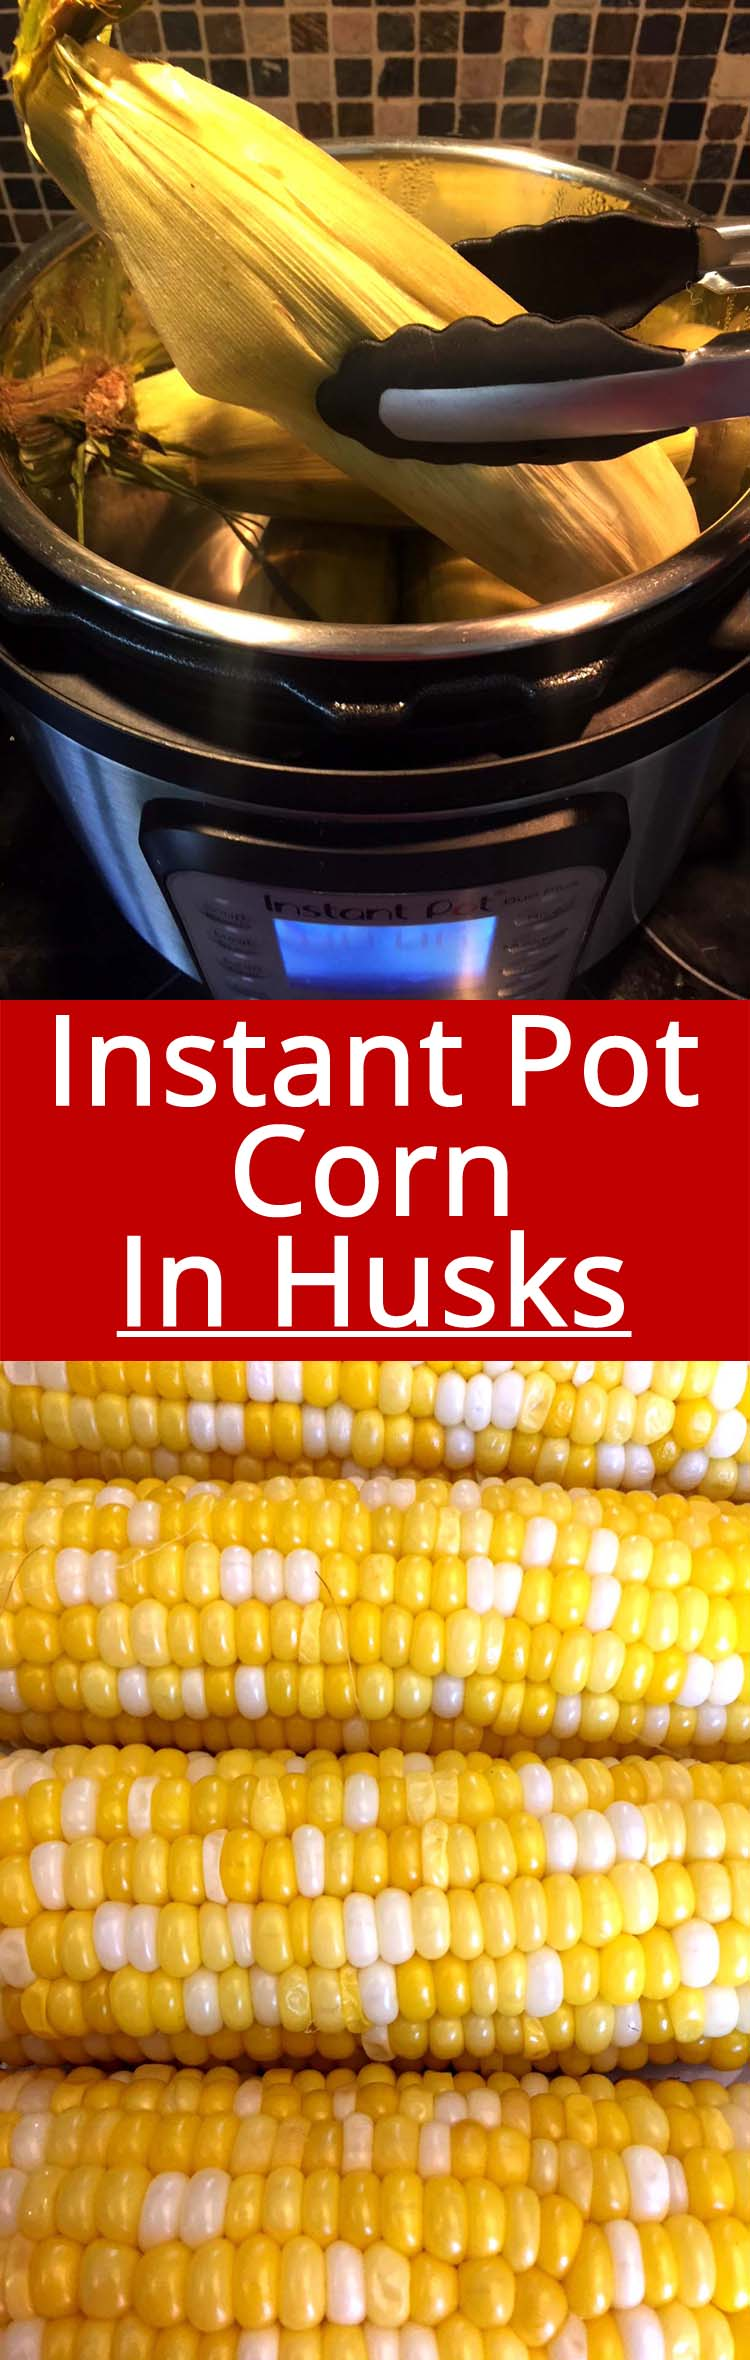 Instant Pot corn on the cob in the husk is the easiest way to cook corn ever! Throw corn in the husk in the Instant Pot and take out the juiciest yummiest corn - amazing!